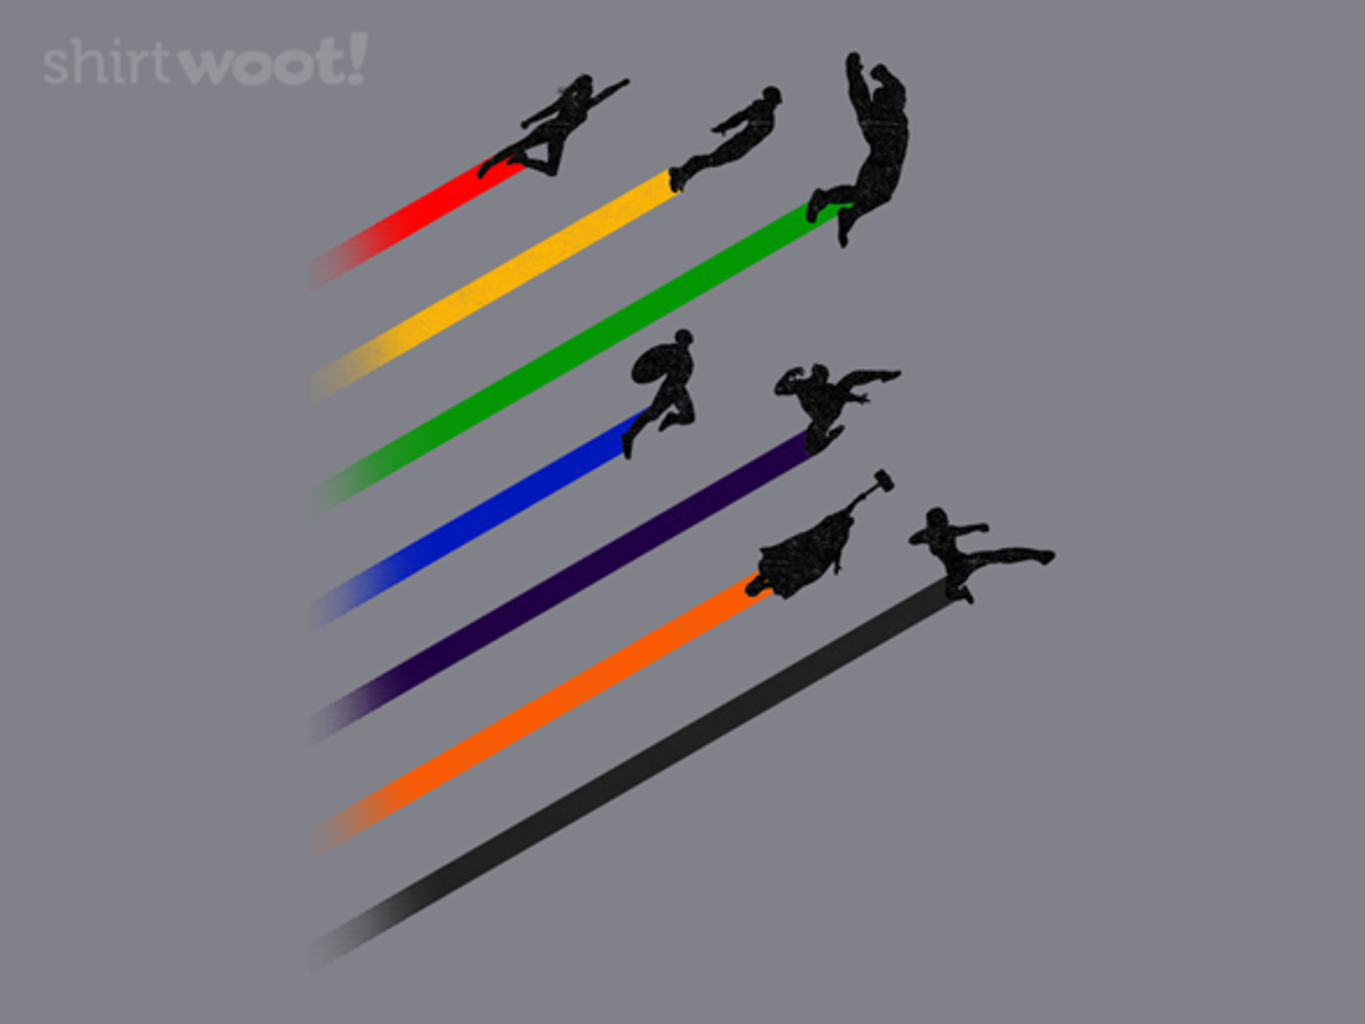 Woot!: Marvelous Stripes